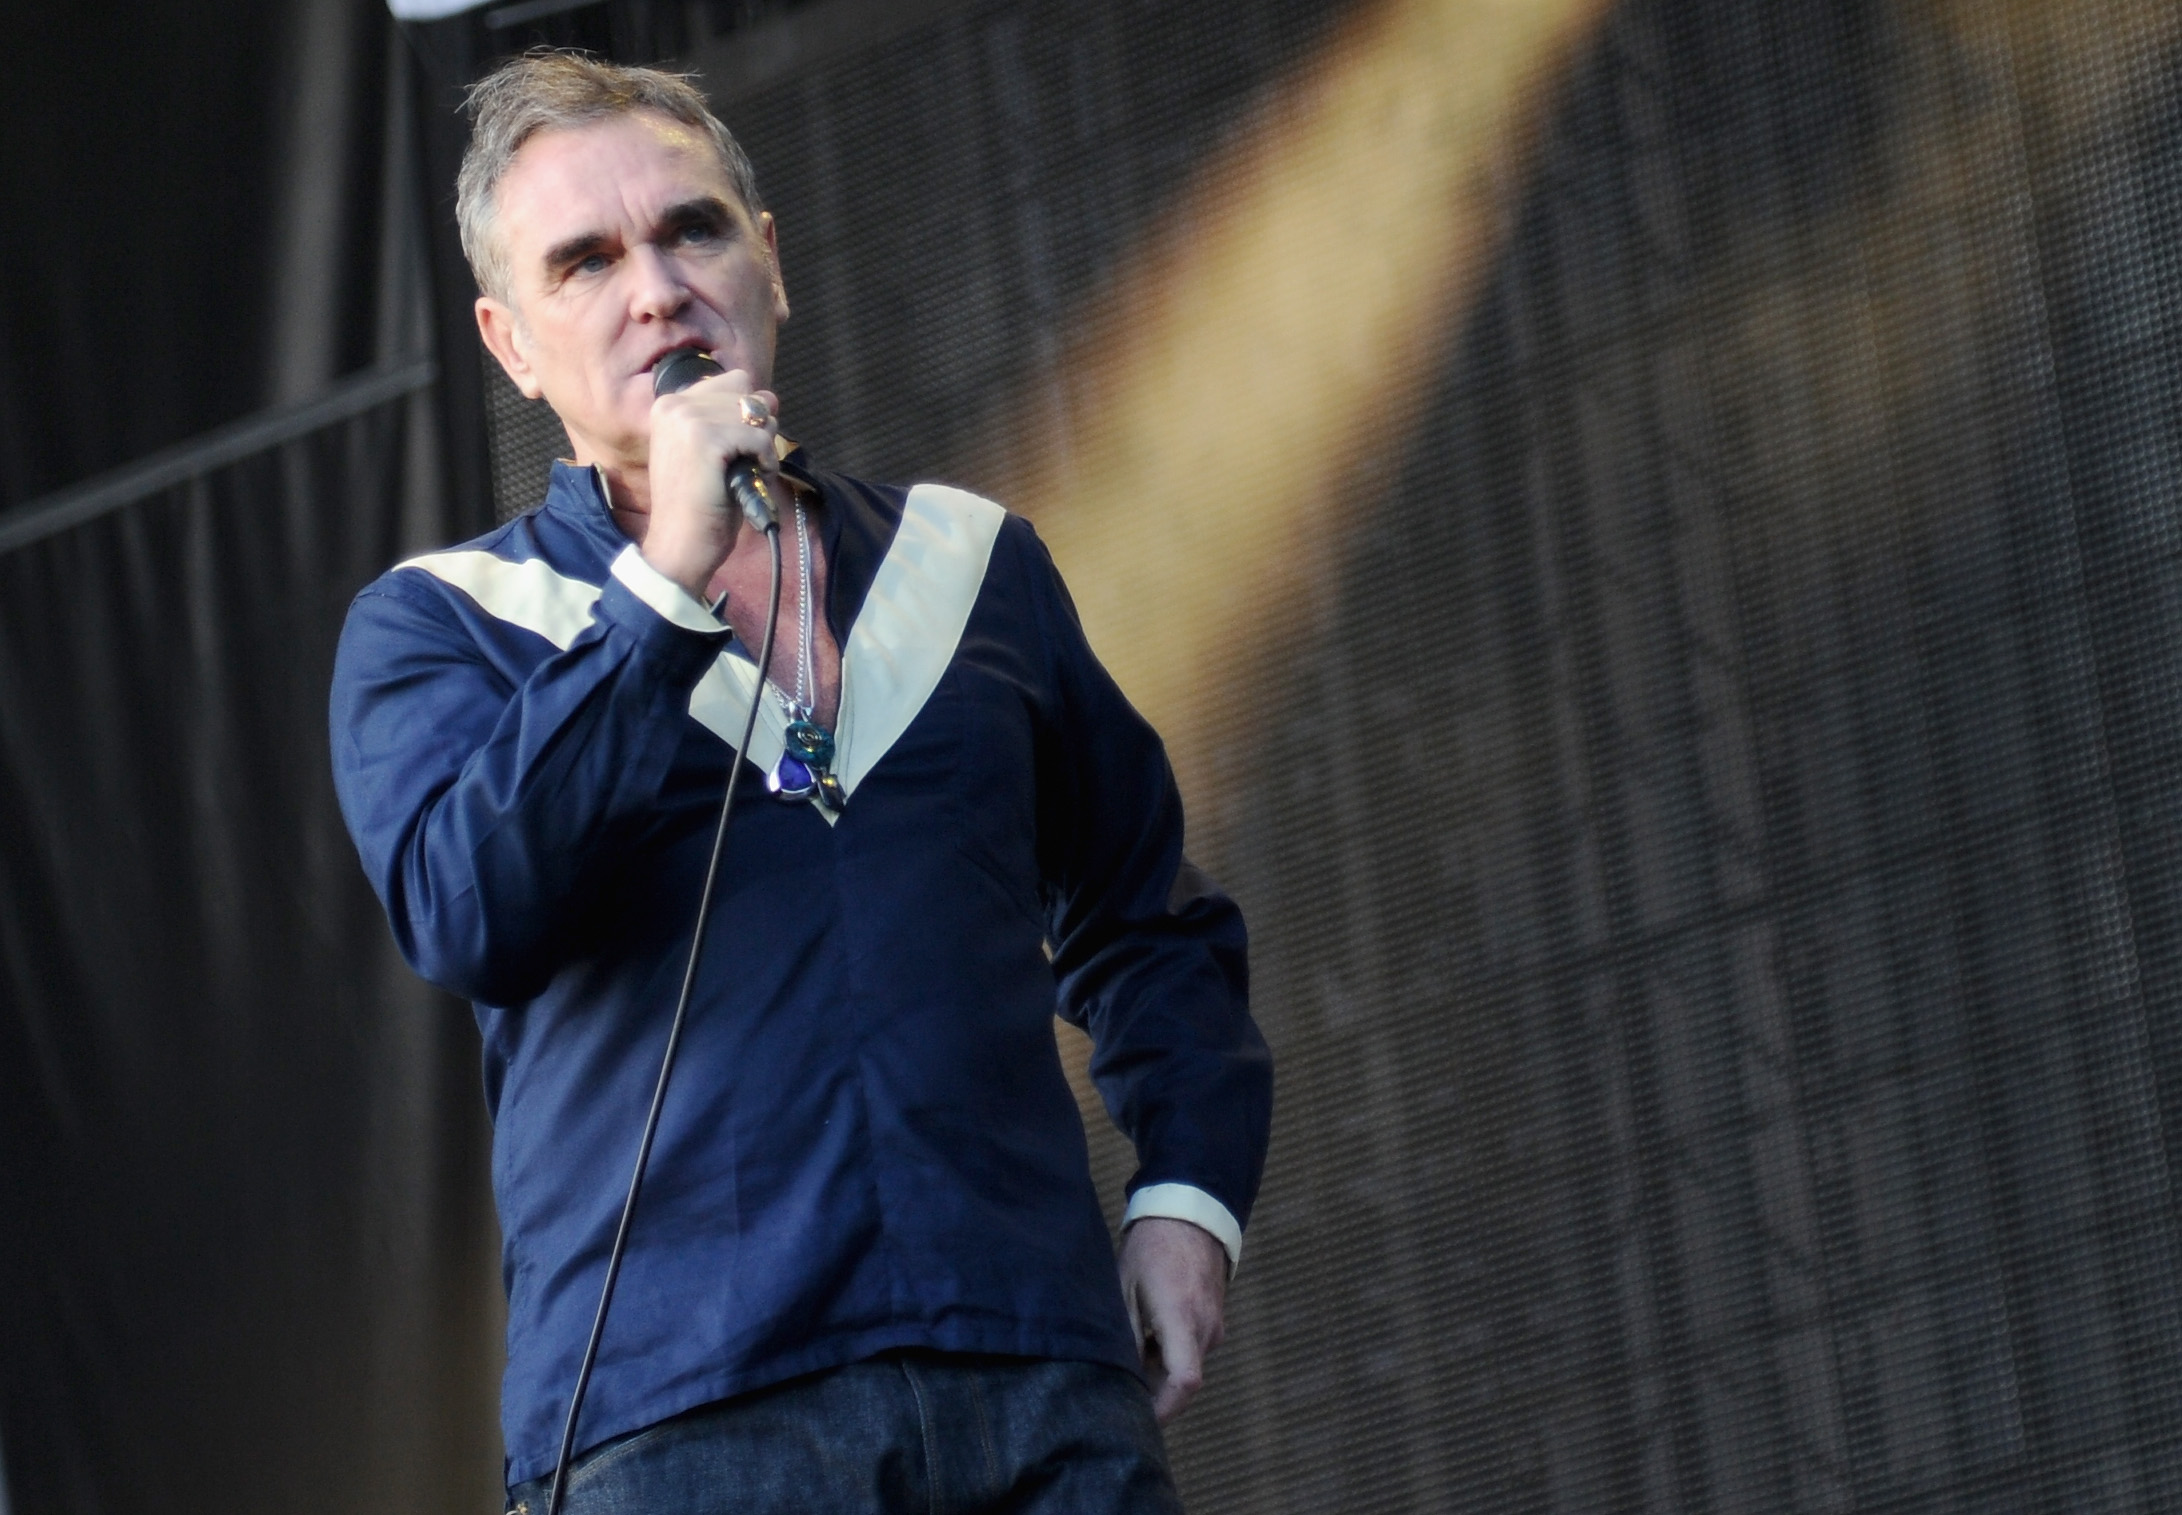 Morrissey under fire for declaring 'politicians are never victims' in bizarre tribute to victims of Manchester attack